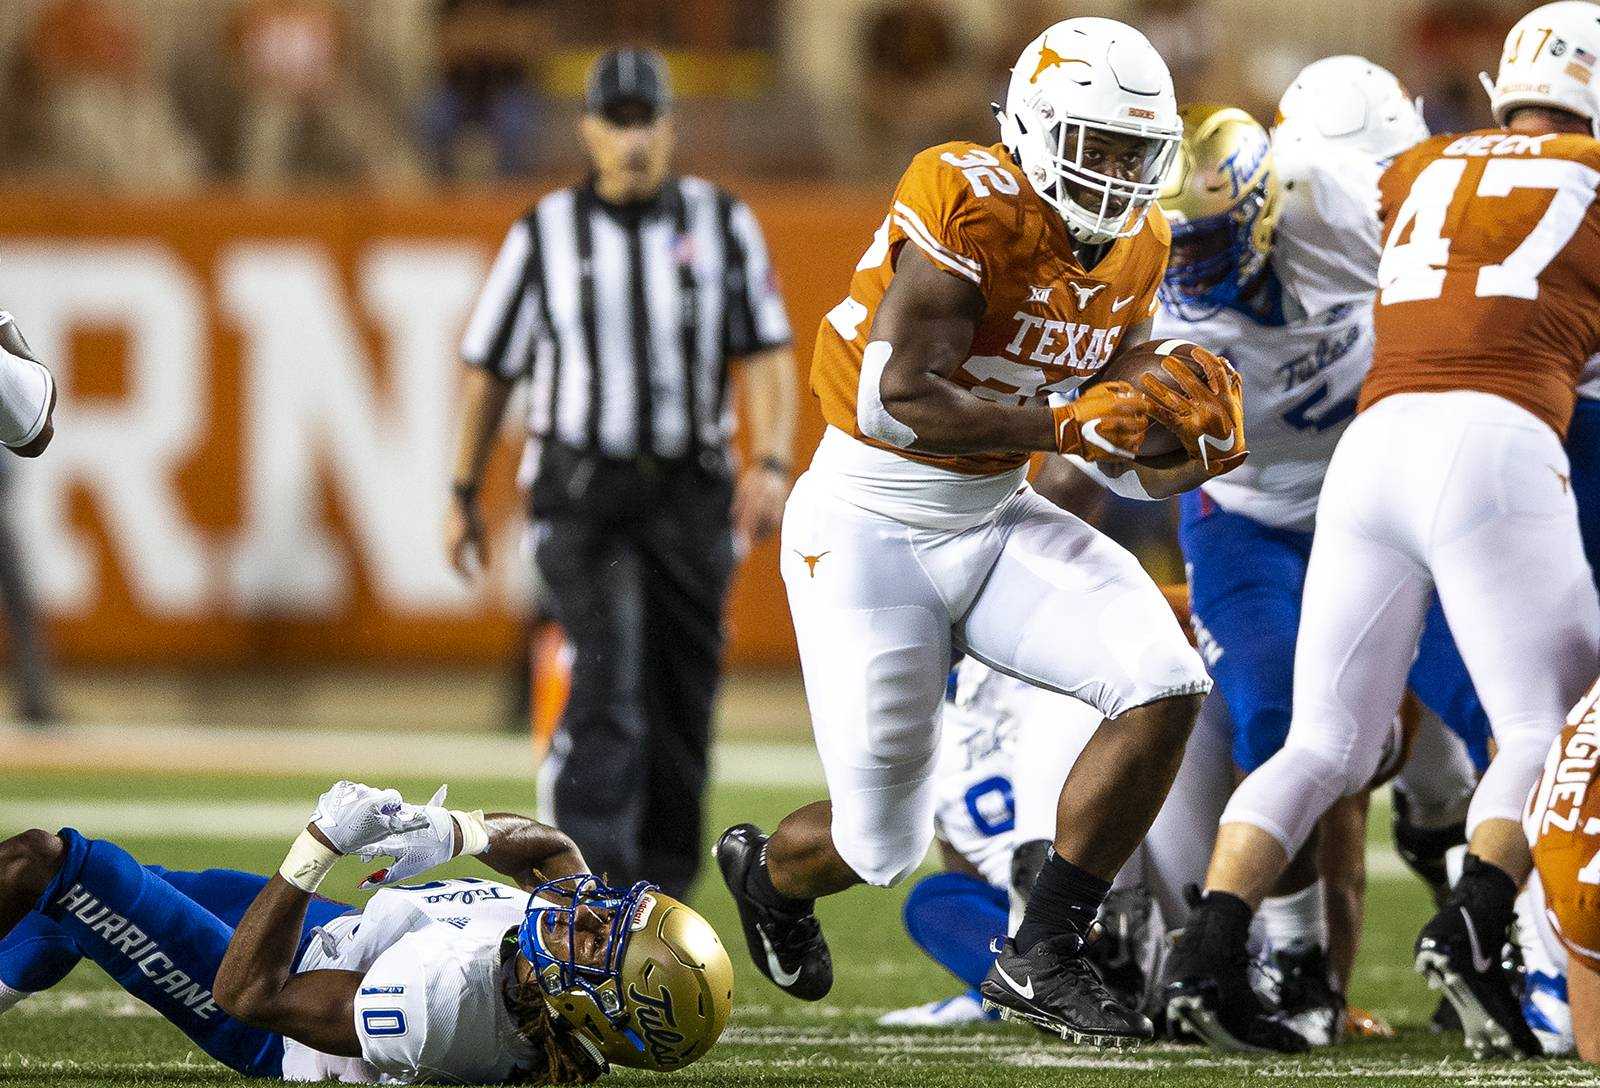 Texas loses more depth in its backfield as Daniel Young suffers an ankle injury